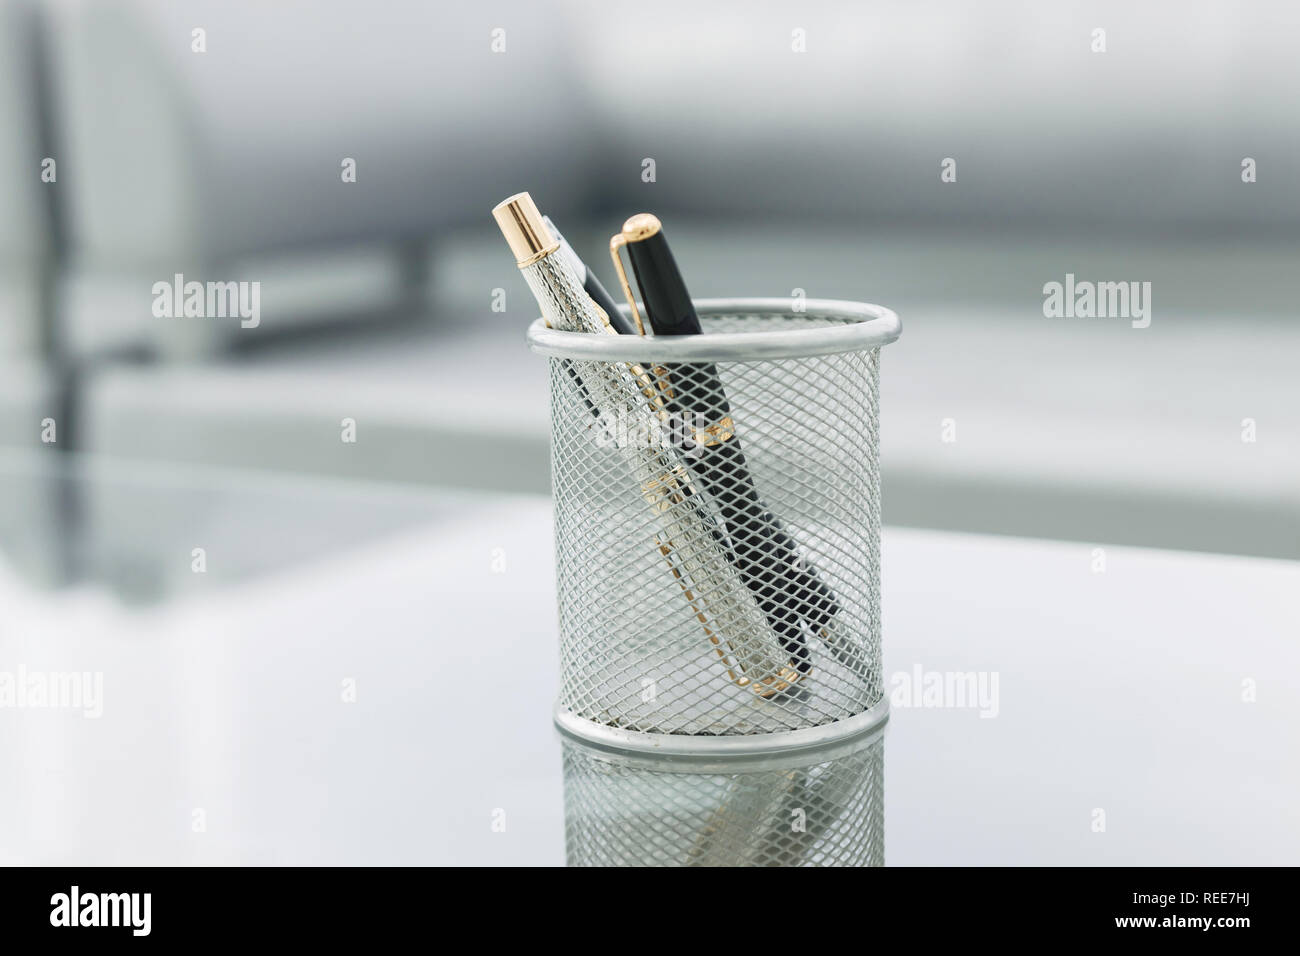 pencil stand and glasses on the glass Desk in the office Stock Photo